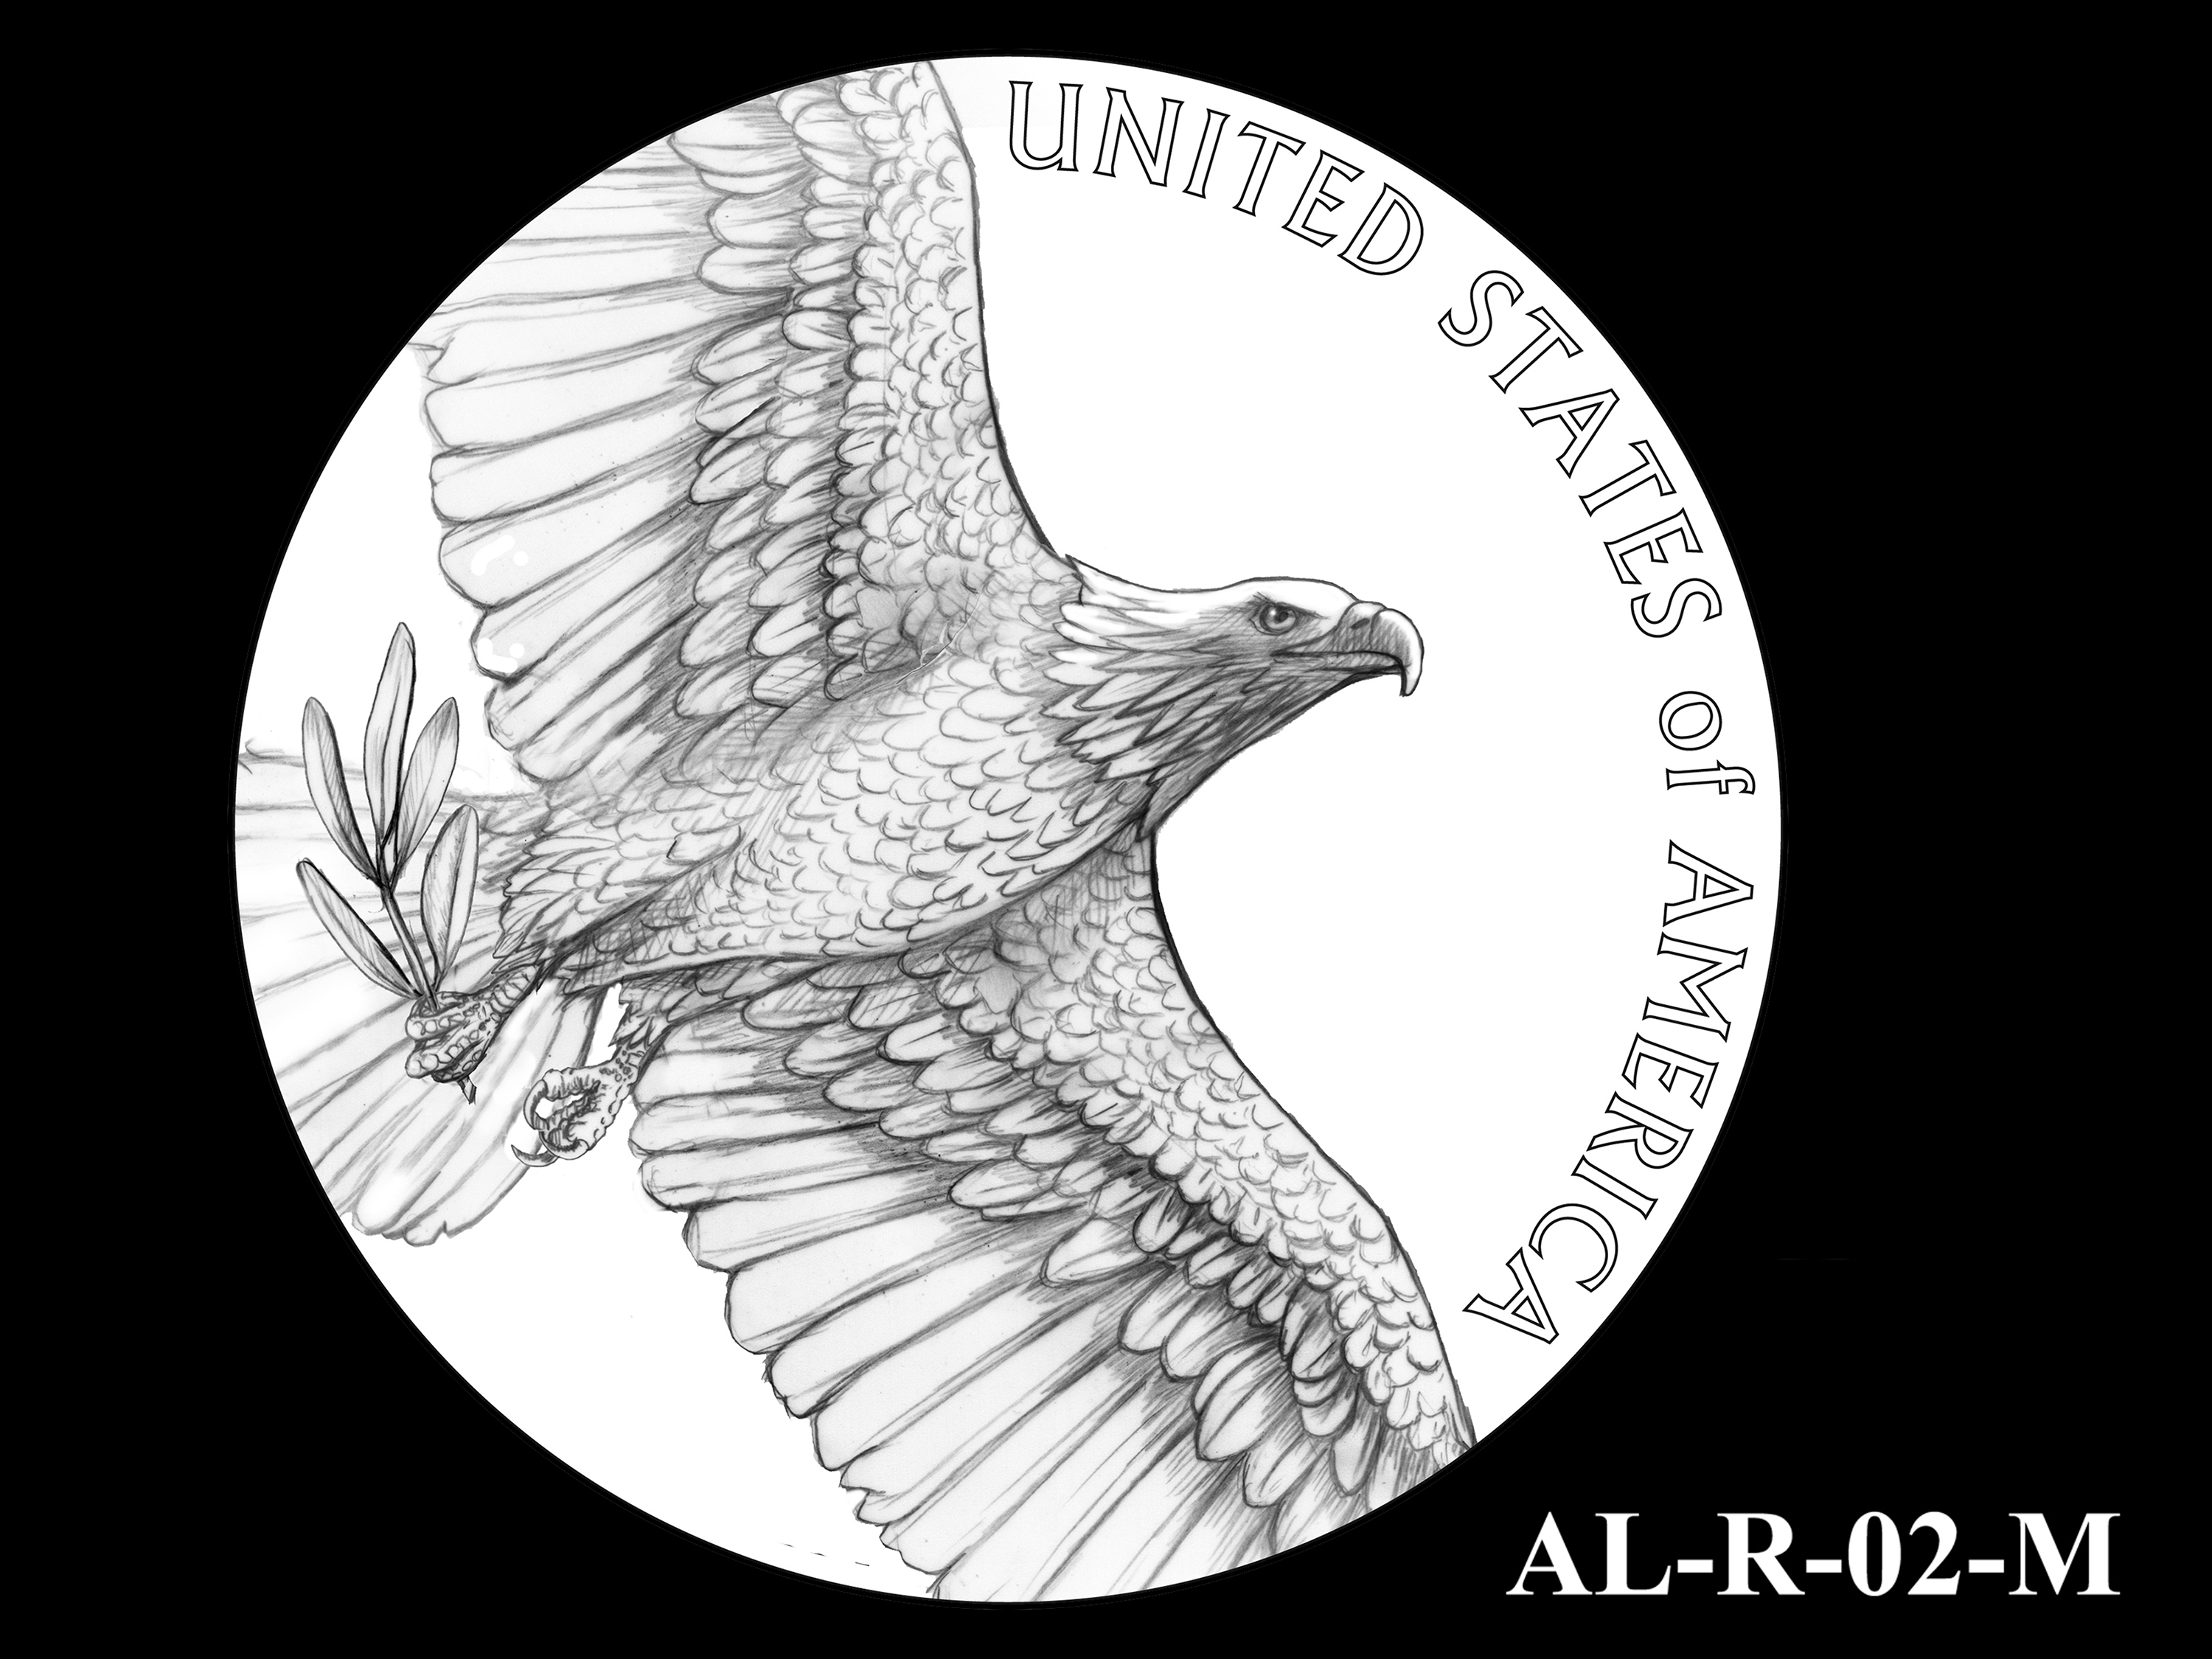 AL-R-02-M -- 2021 American Liberty Gold Coin and Silver Medal Program - Reverse